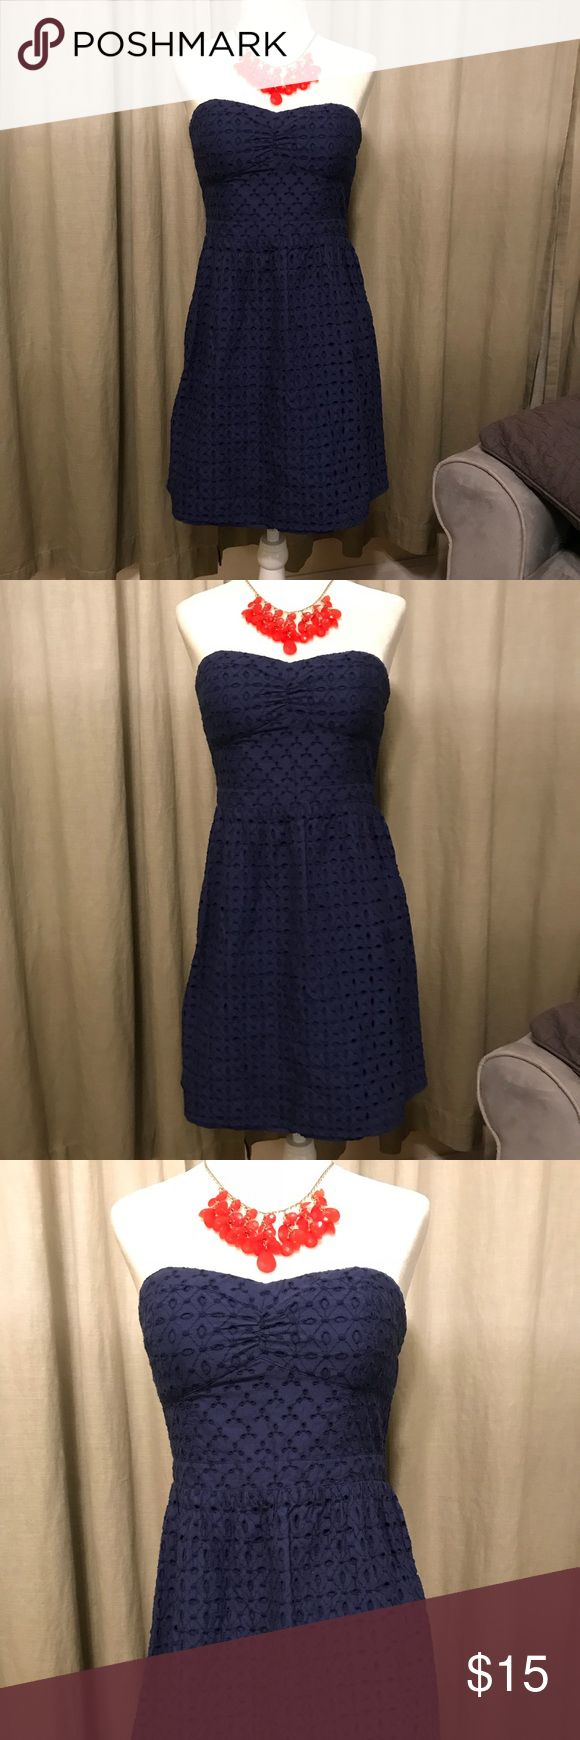 AEO Navy Eyelet Dress Super cute and flattering, strapless dress! American Eagle Outfitters Dresses Midi